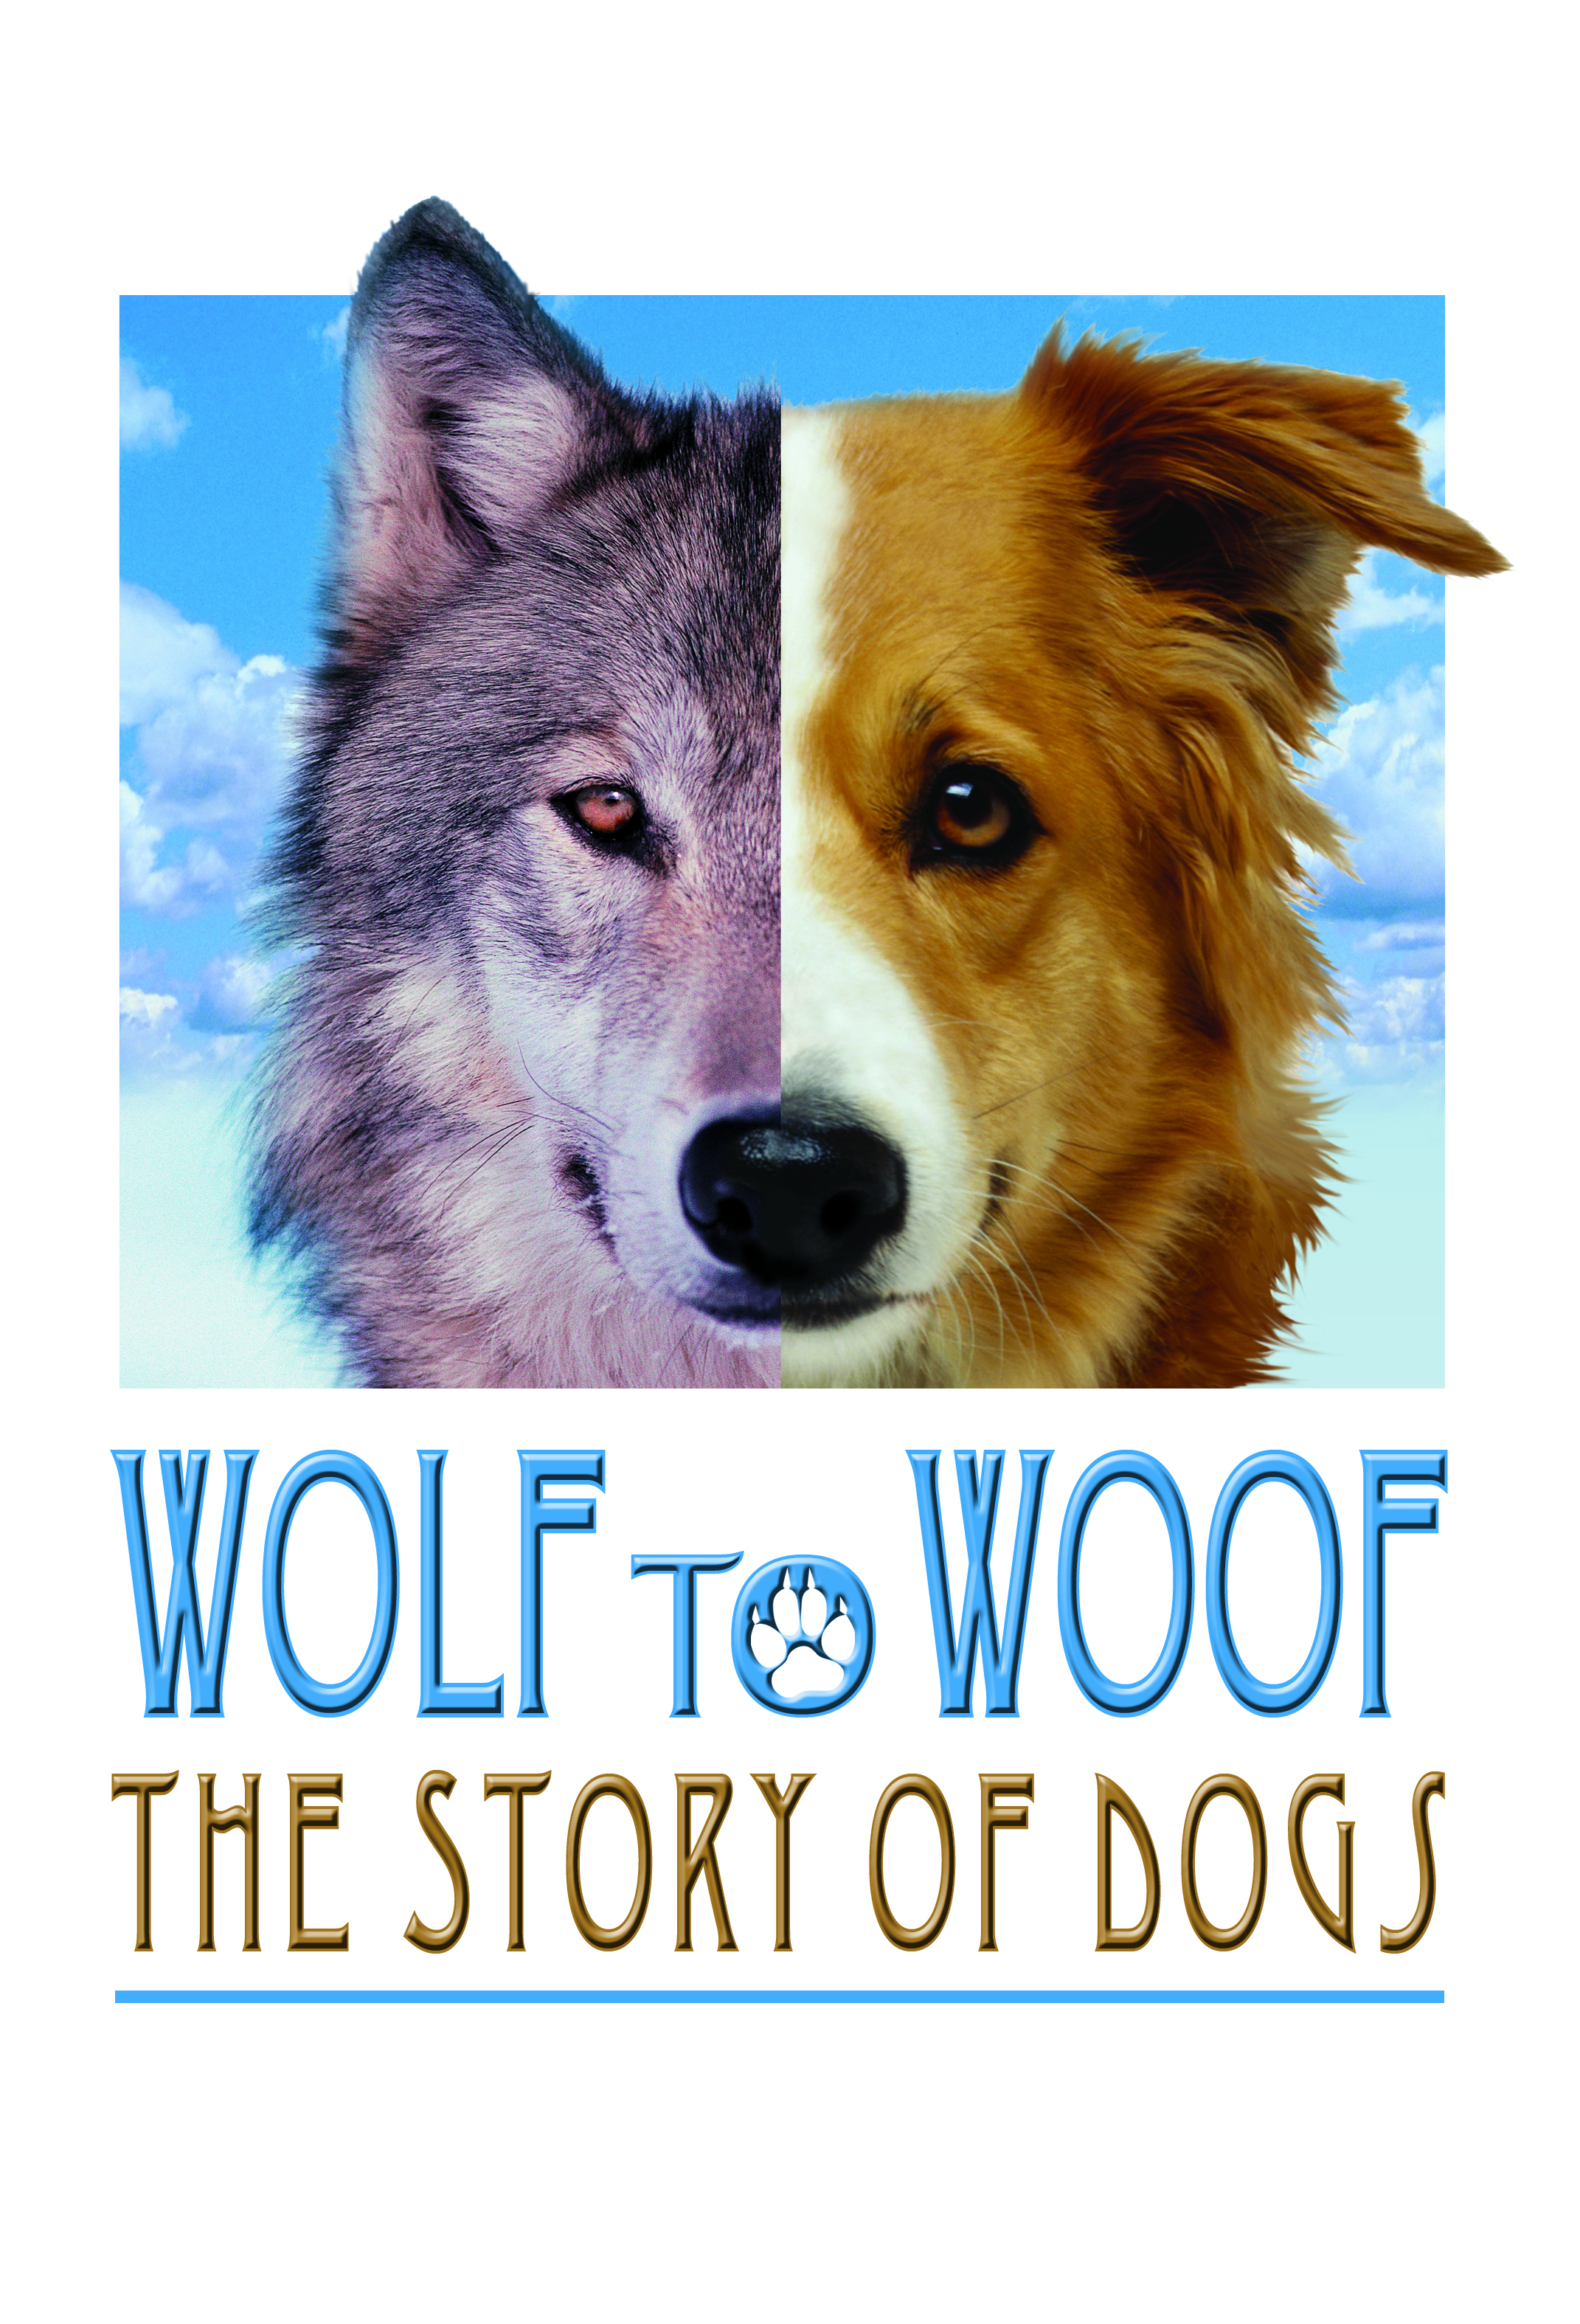 Wolf To Woof The Story Of Dogs Wonder Works Exhibits Cihuahua Learn More About Pricing And Tour Schedules Please Contact Our Sales Staff At 325 692 8811 Or Email Jack